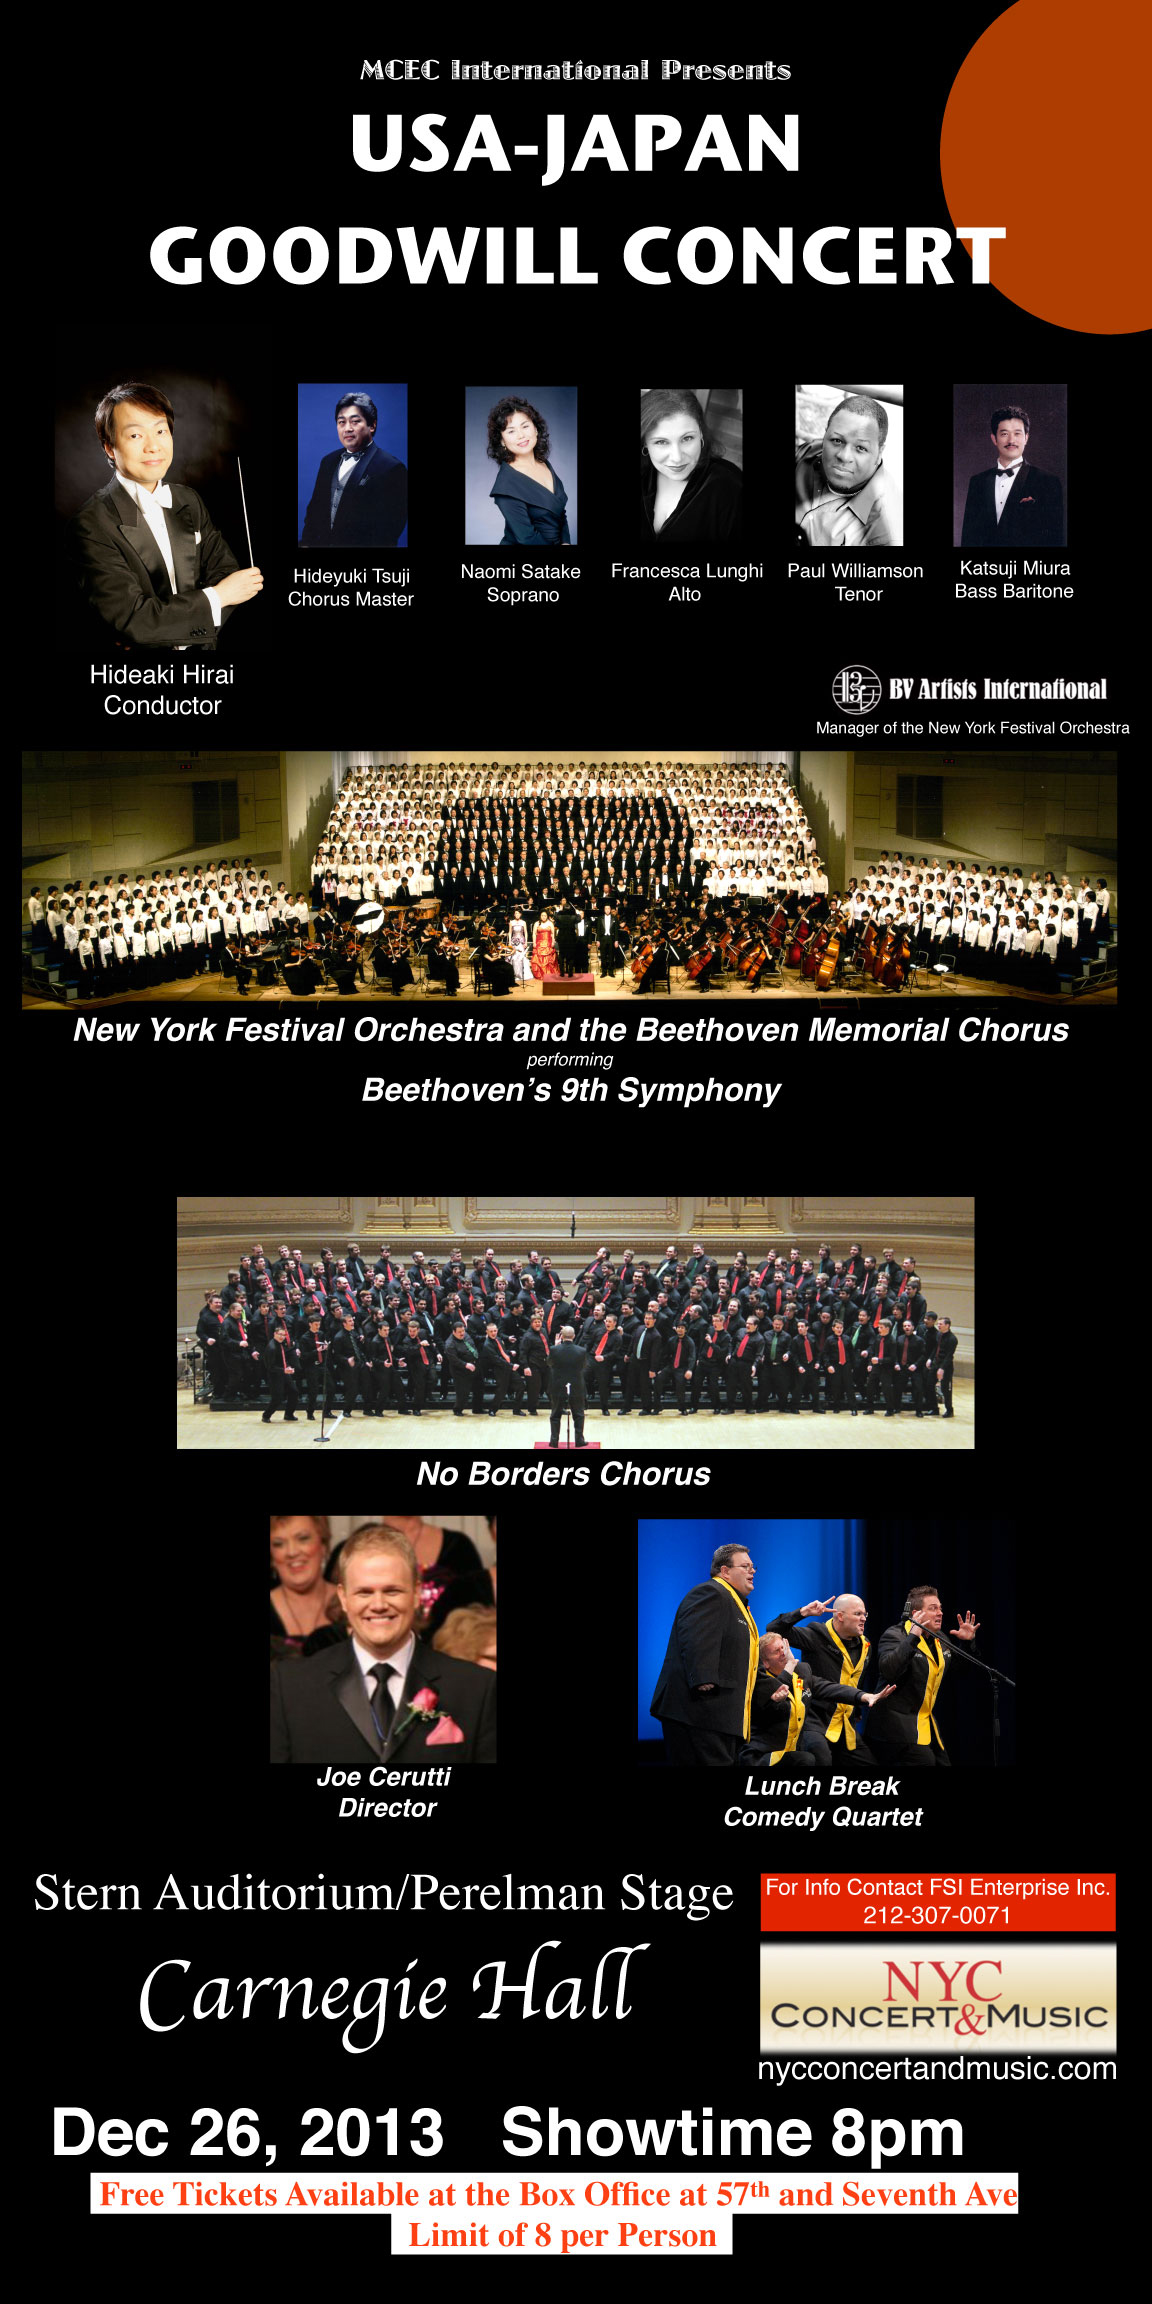 USA-Japan Goodwill Mission Concert in Review